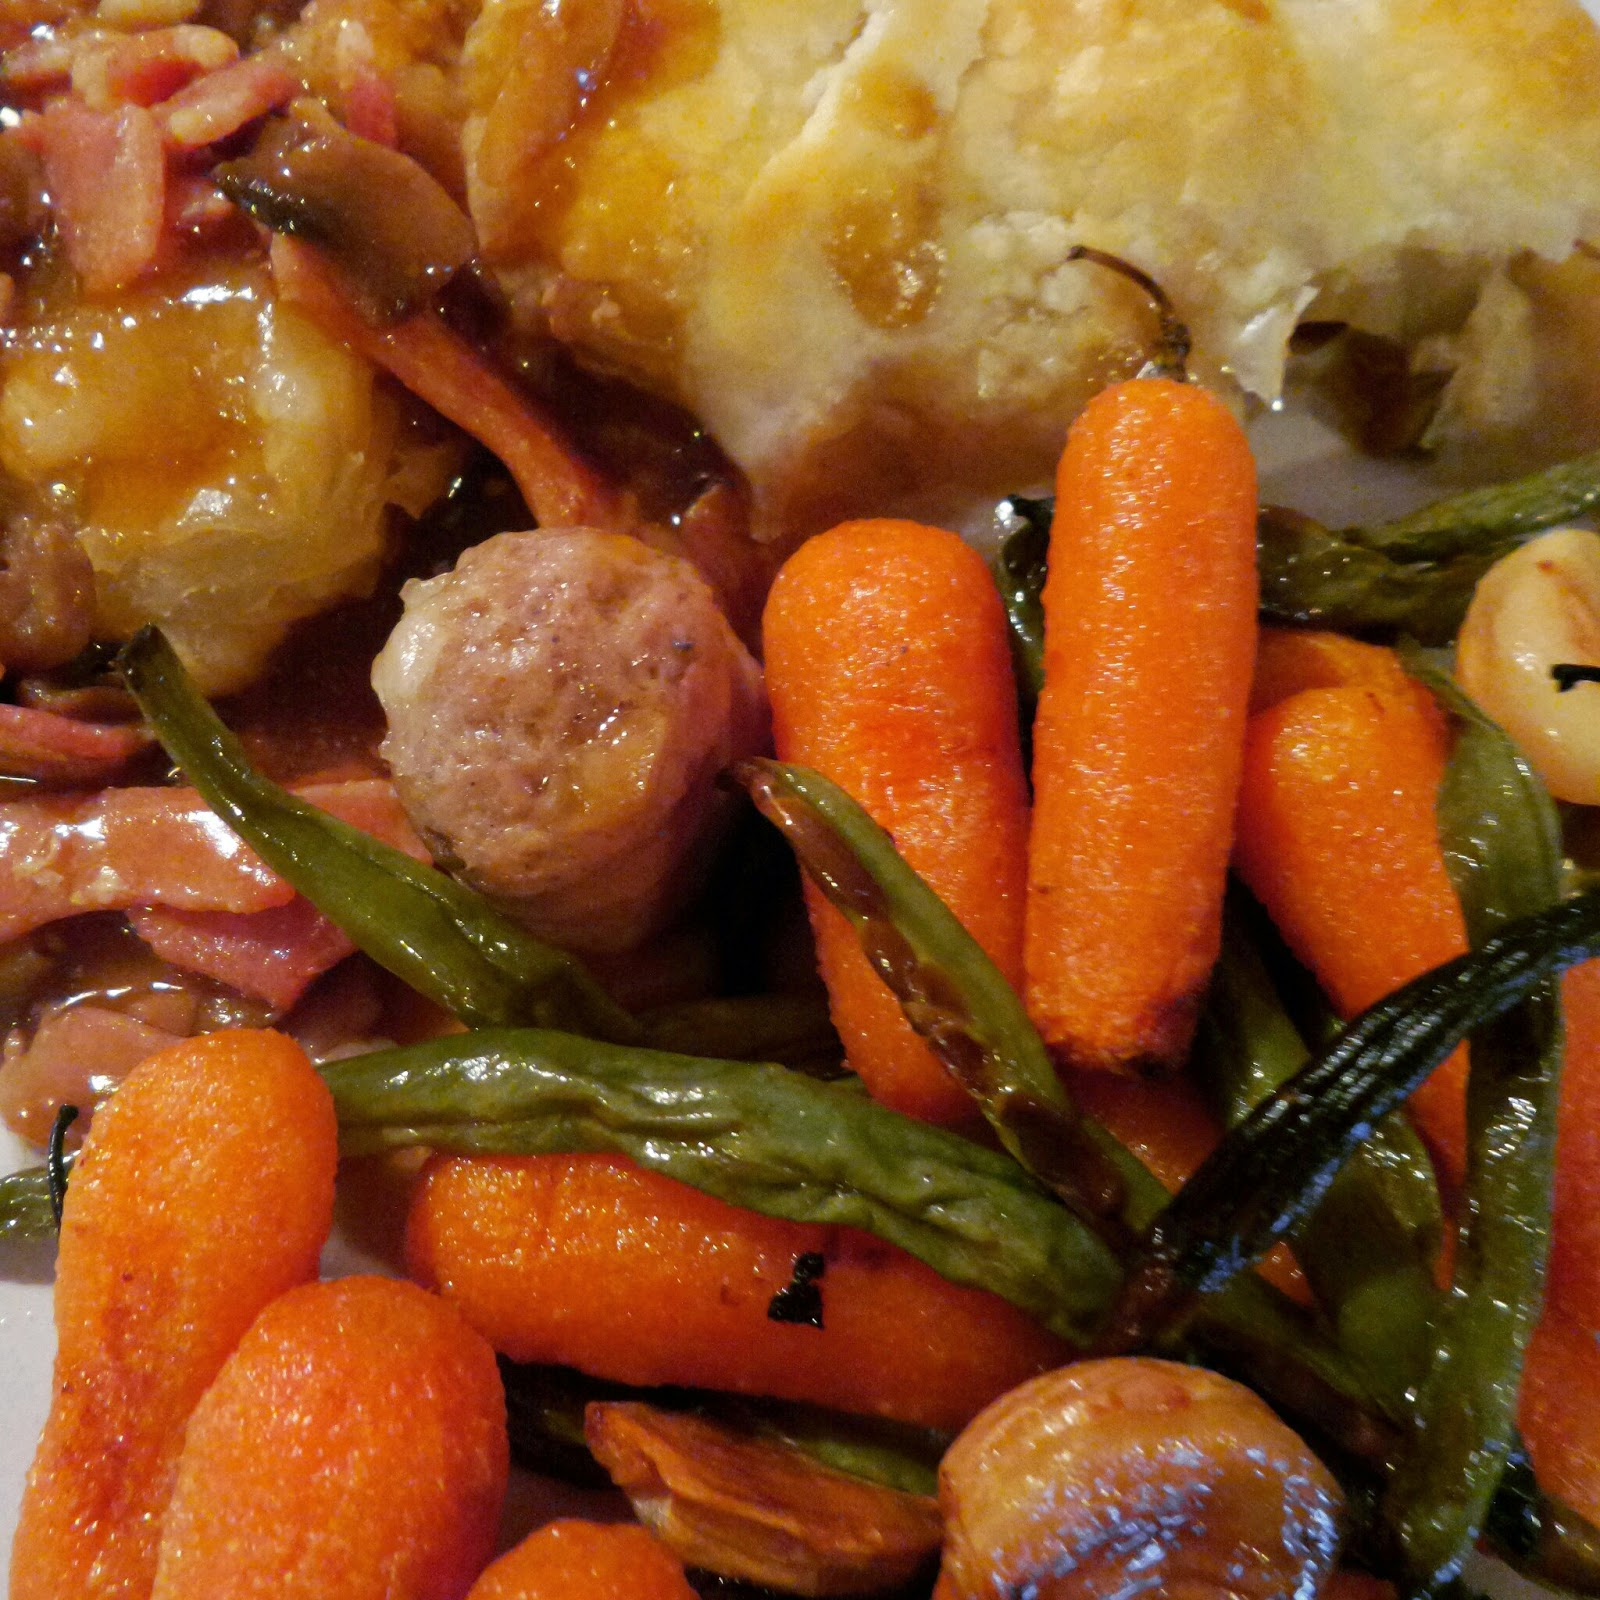 Sausage Pie and Garlic Roasted Carrots